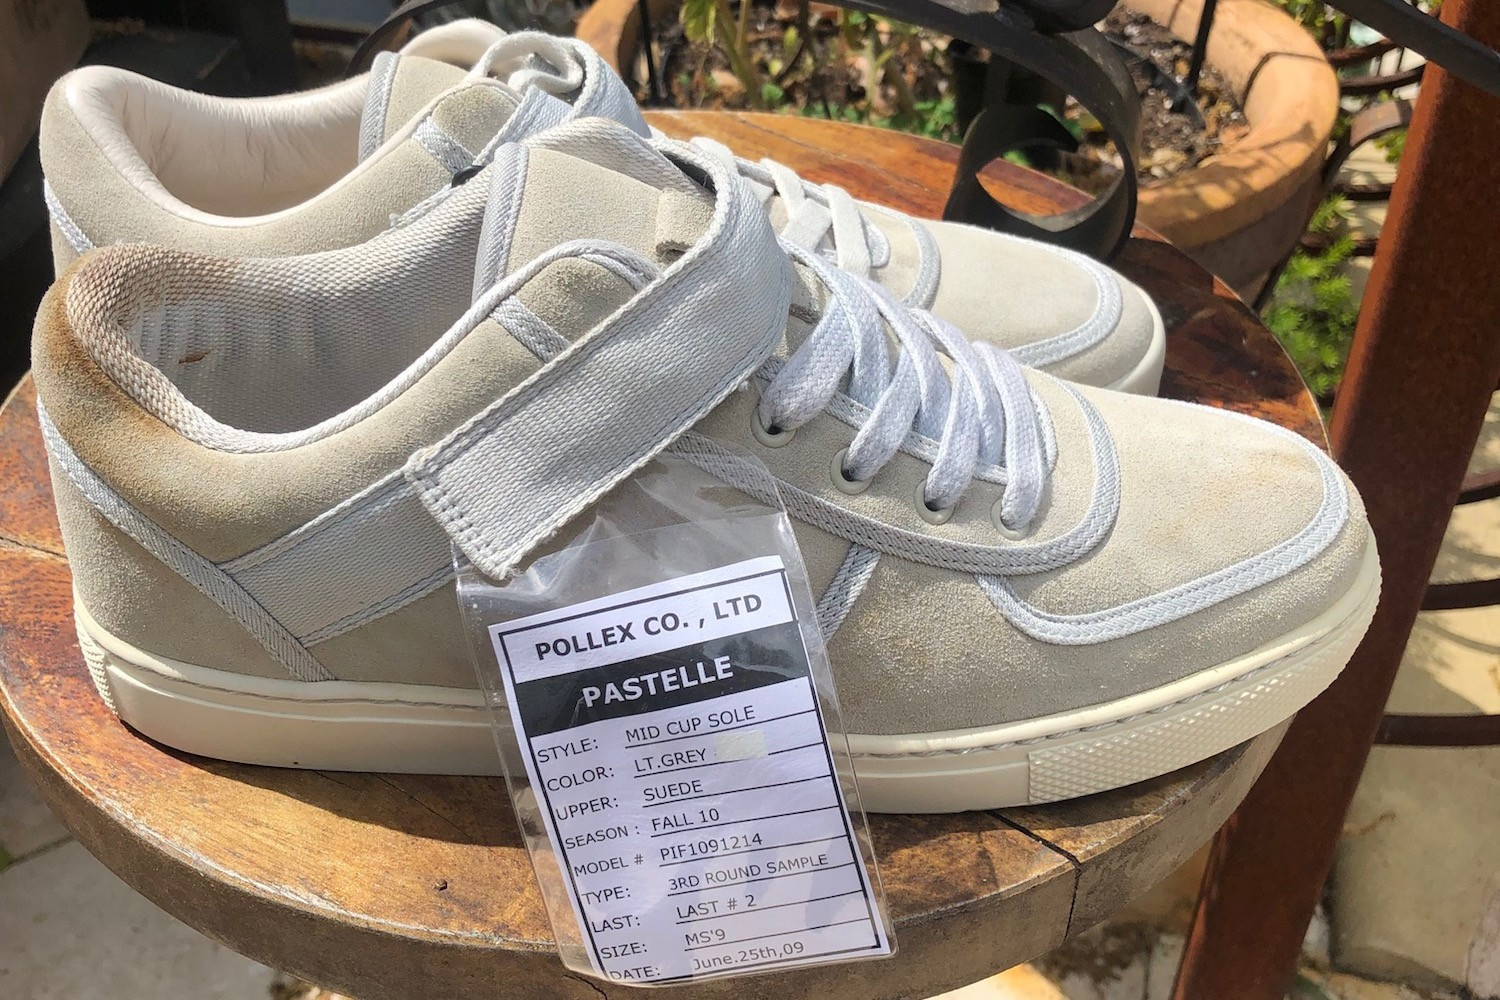 1-Of-1 Pastelle Sneaker Sample for $5,000 USD kanye west clothing mid top canvas